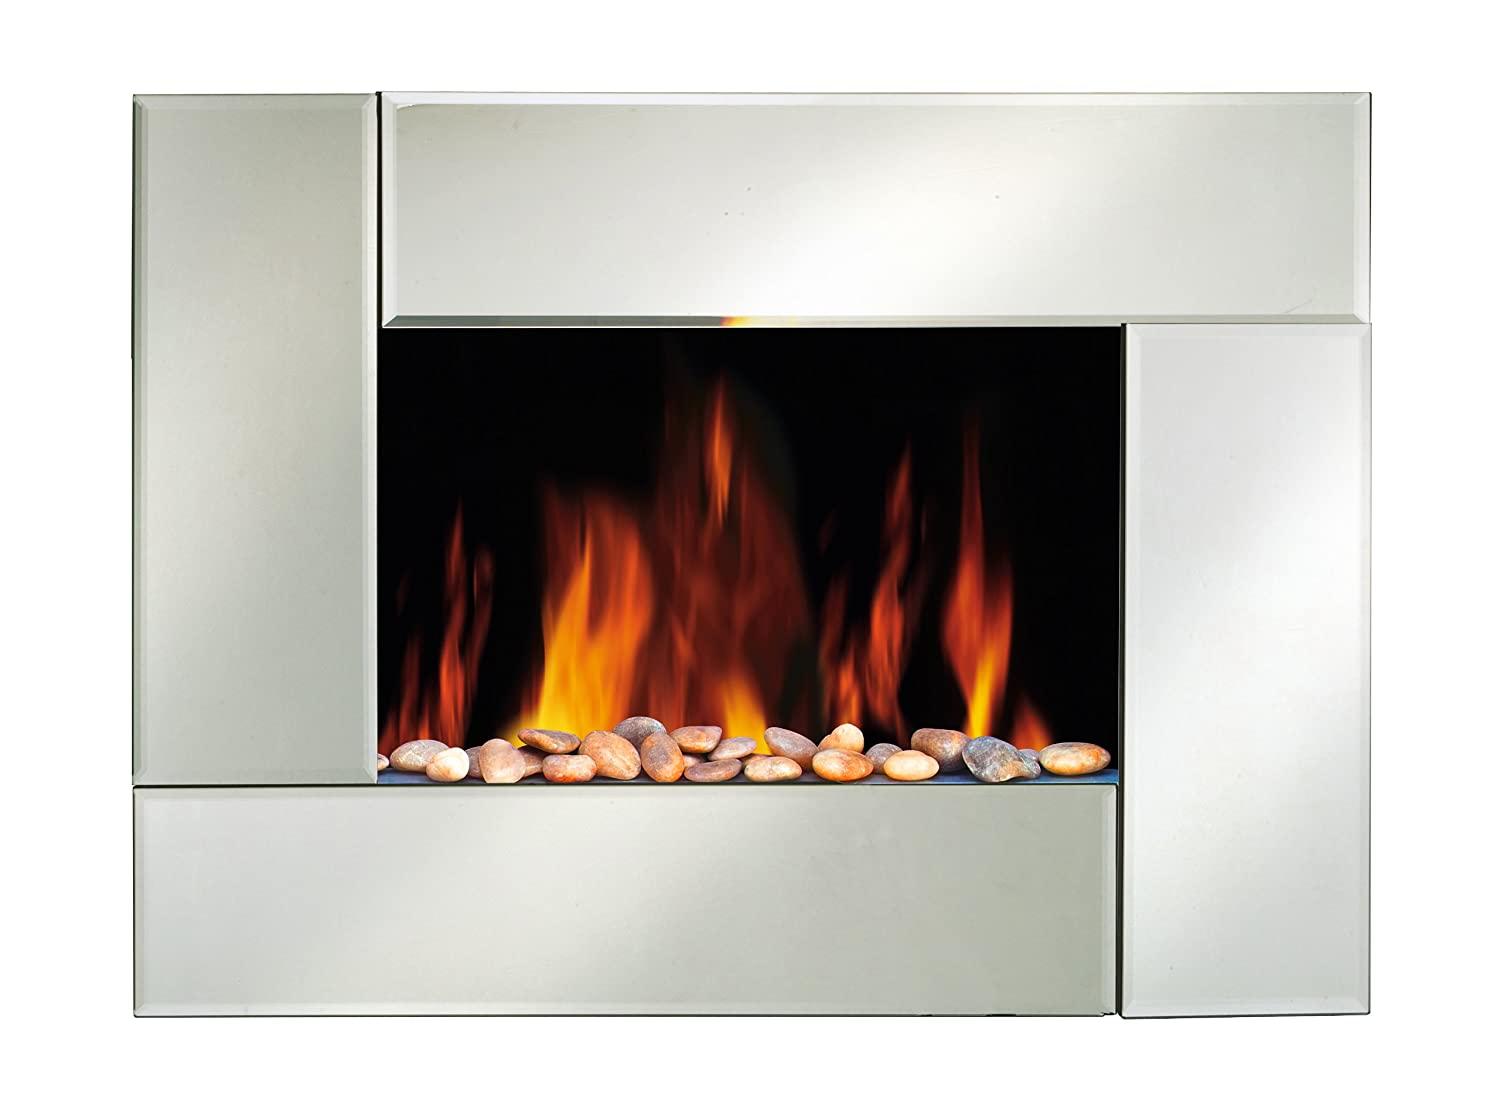 electric wall fire fireplace mounted stylish mirror glass flicker